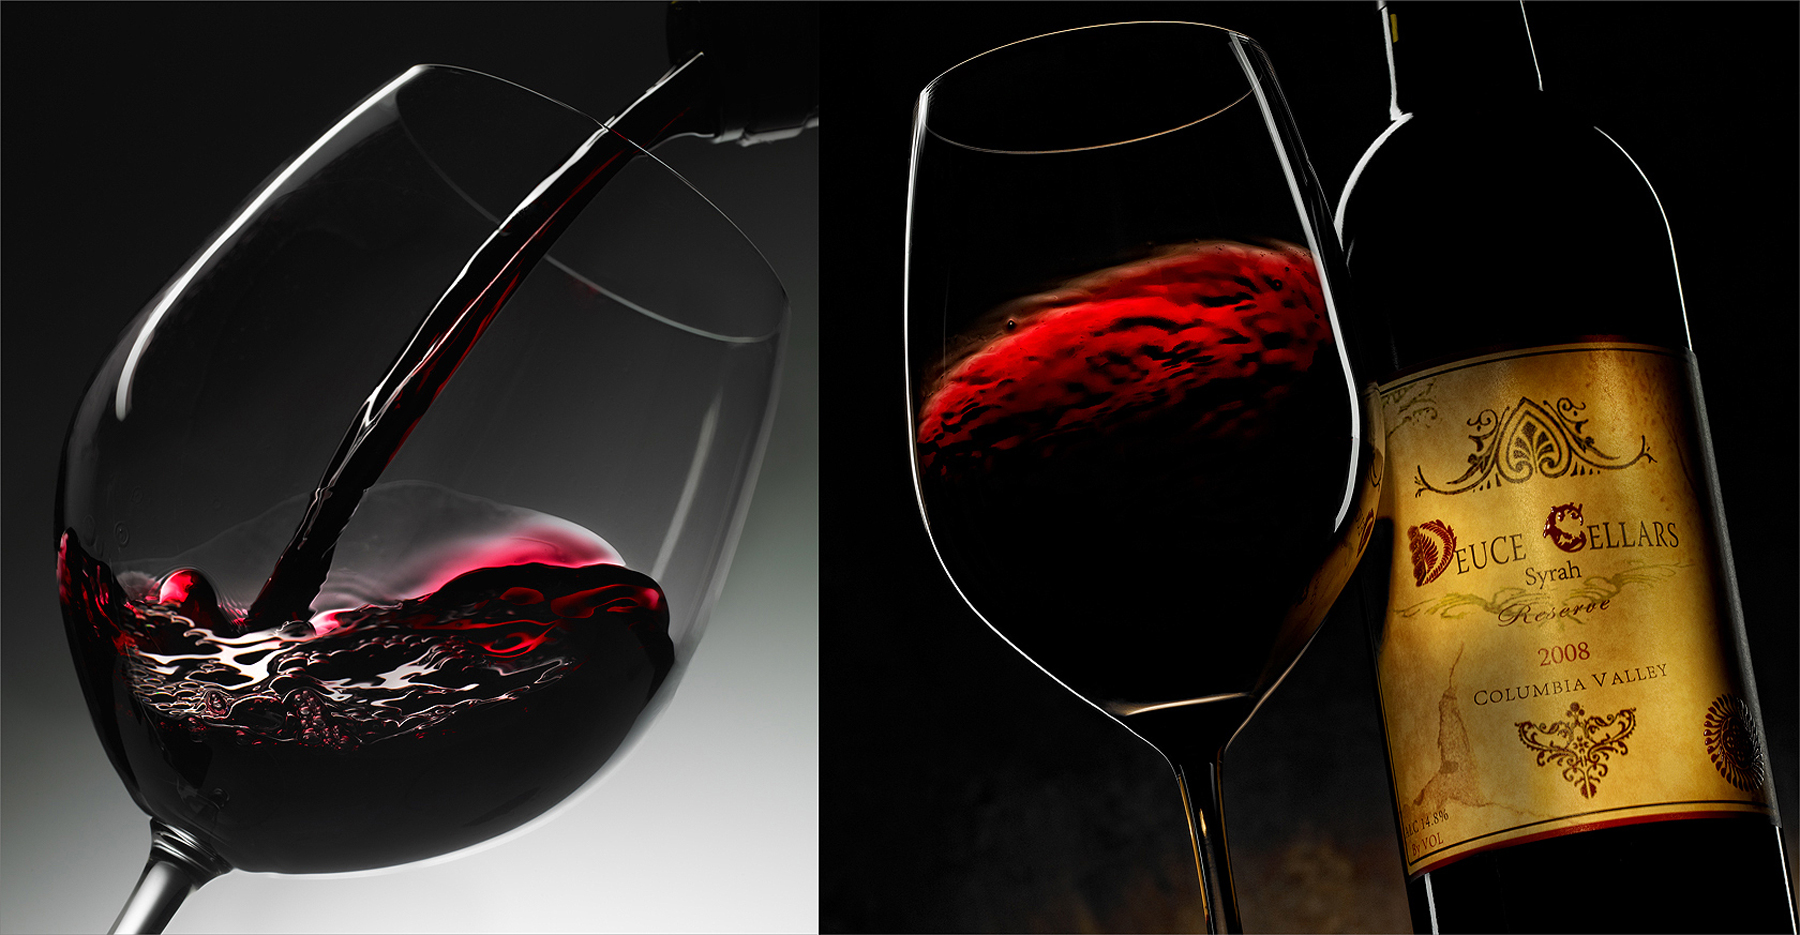 Red wine bottle pouring into wine glass |Dovis Bird Agency Reps